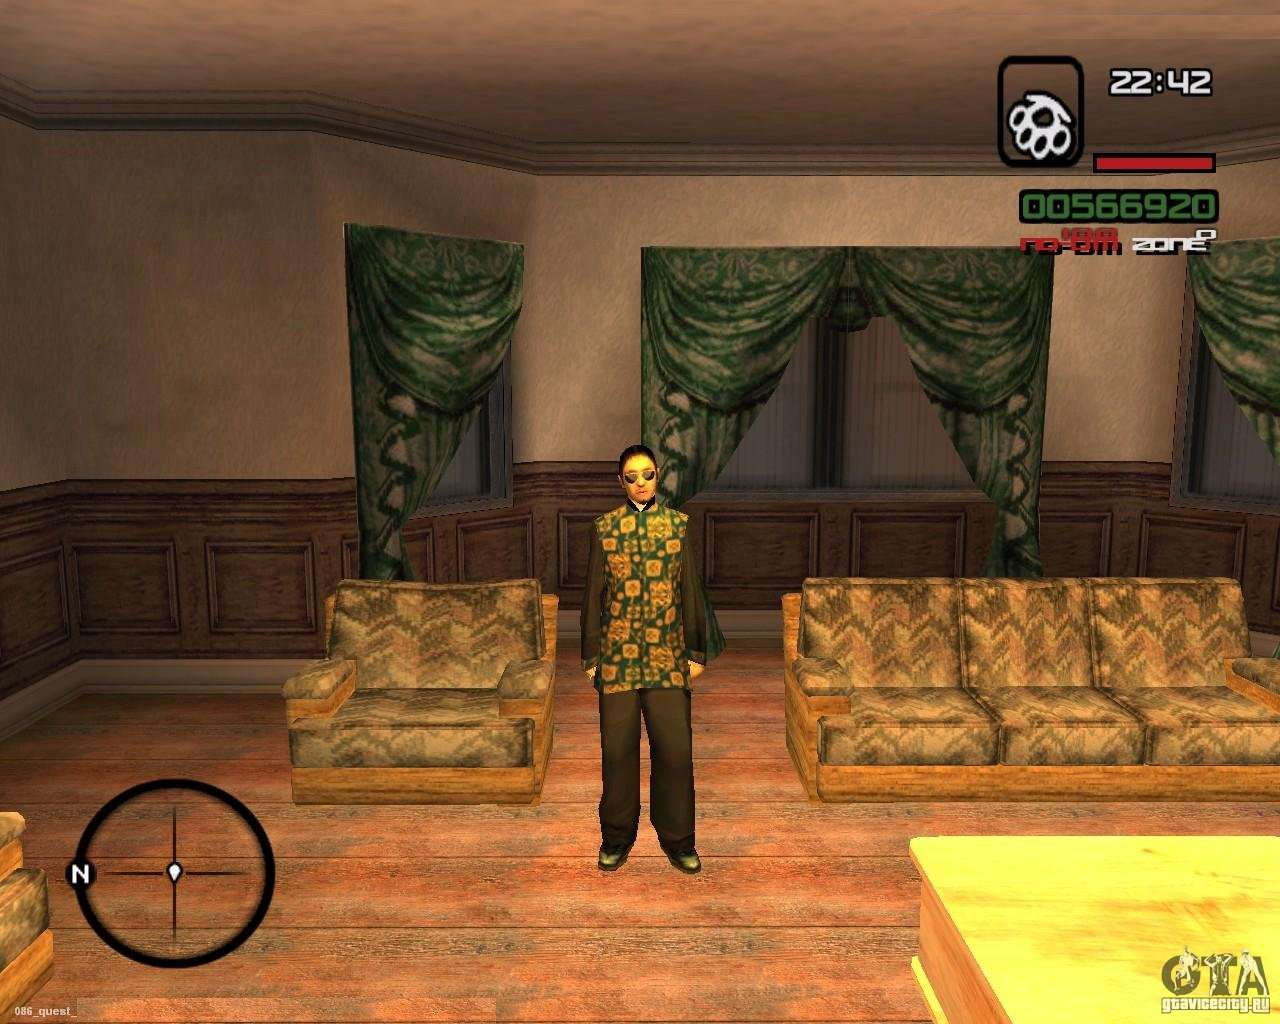 gta san andreas how to change language